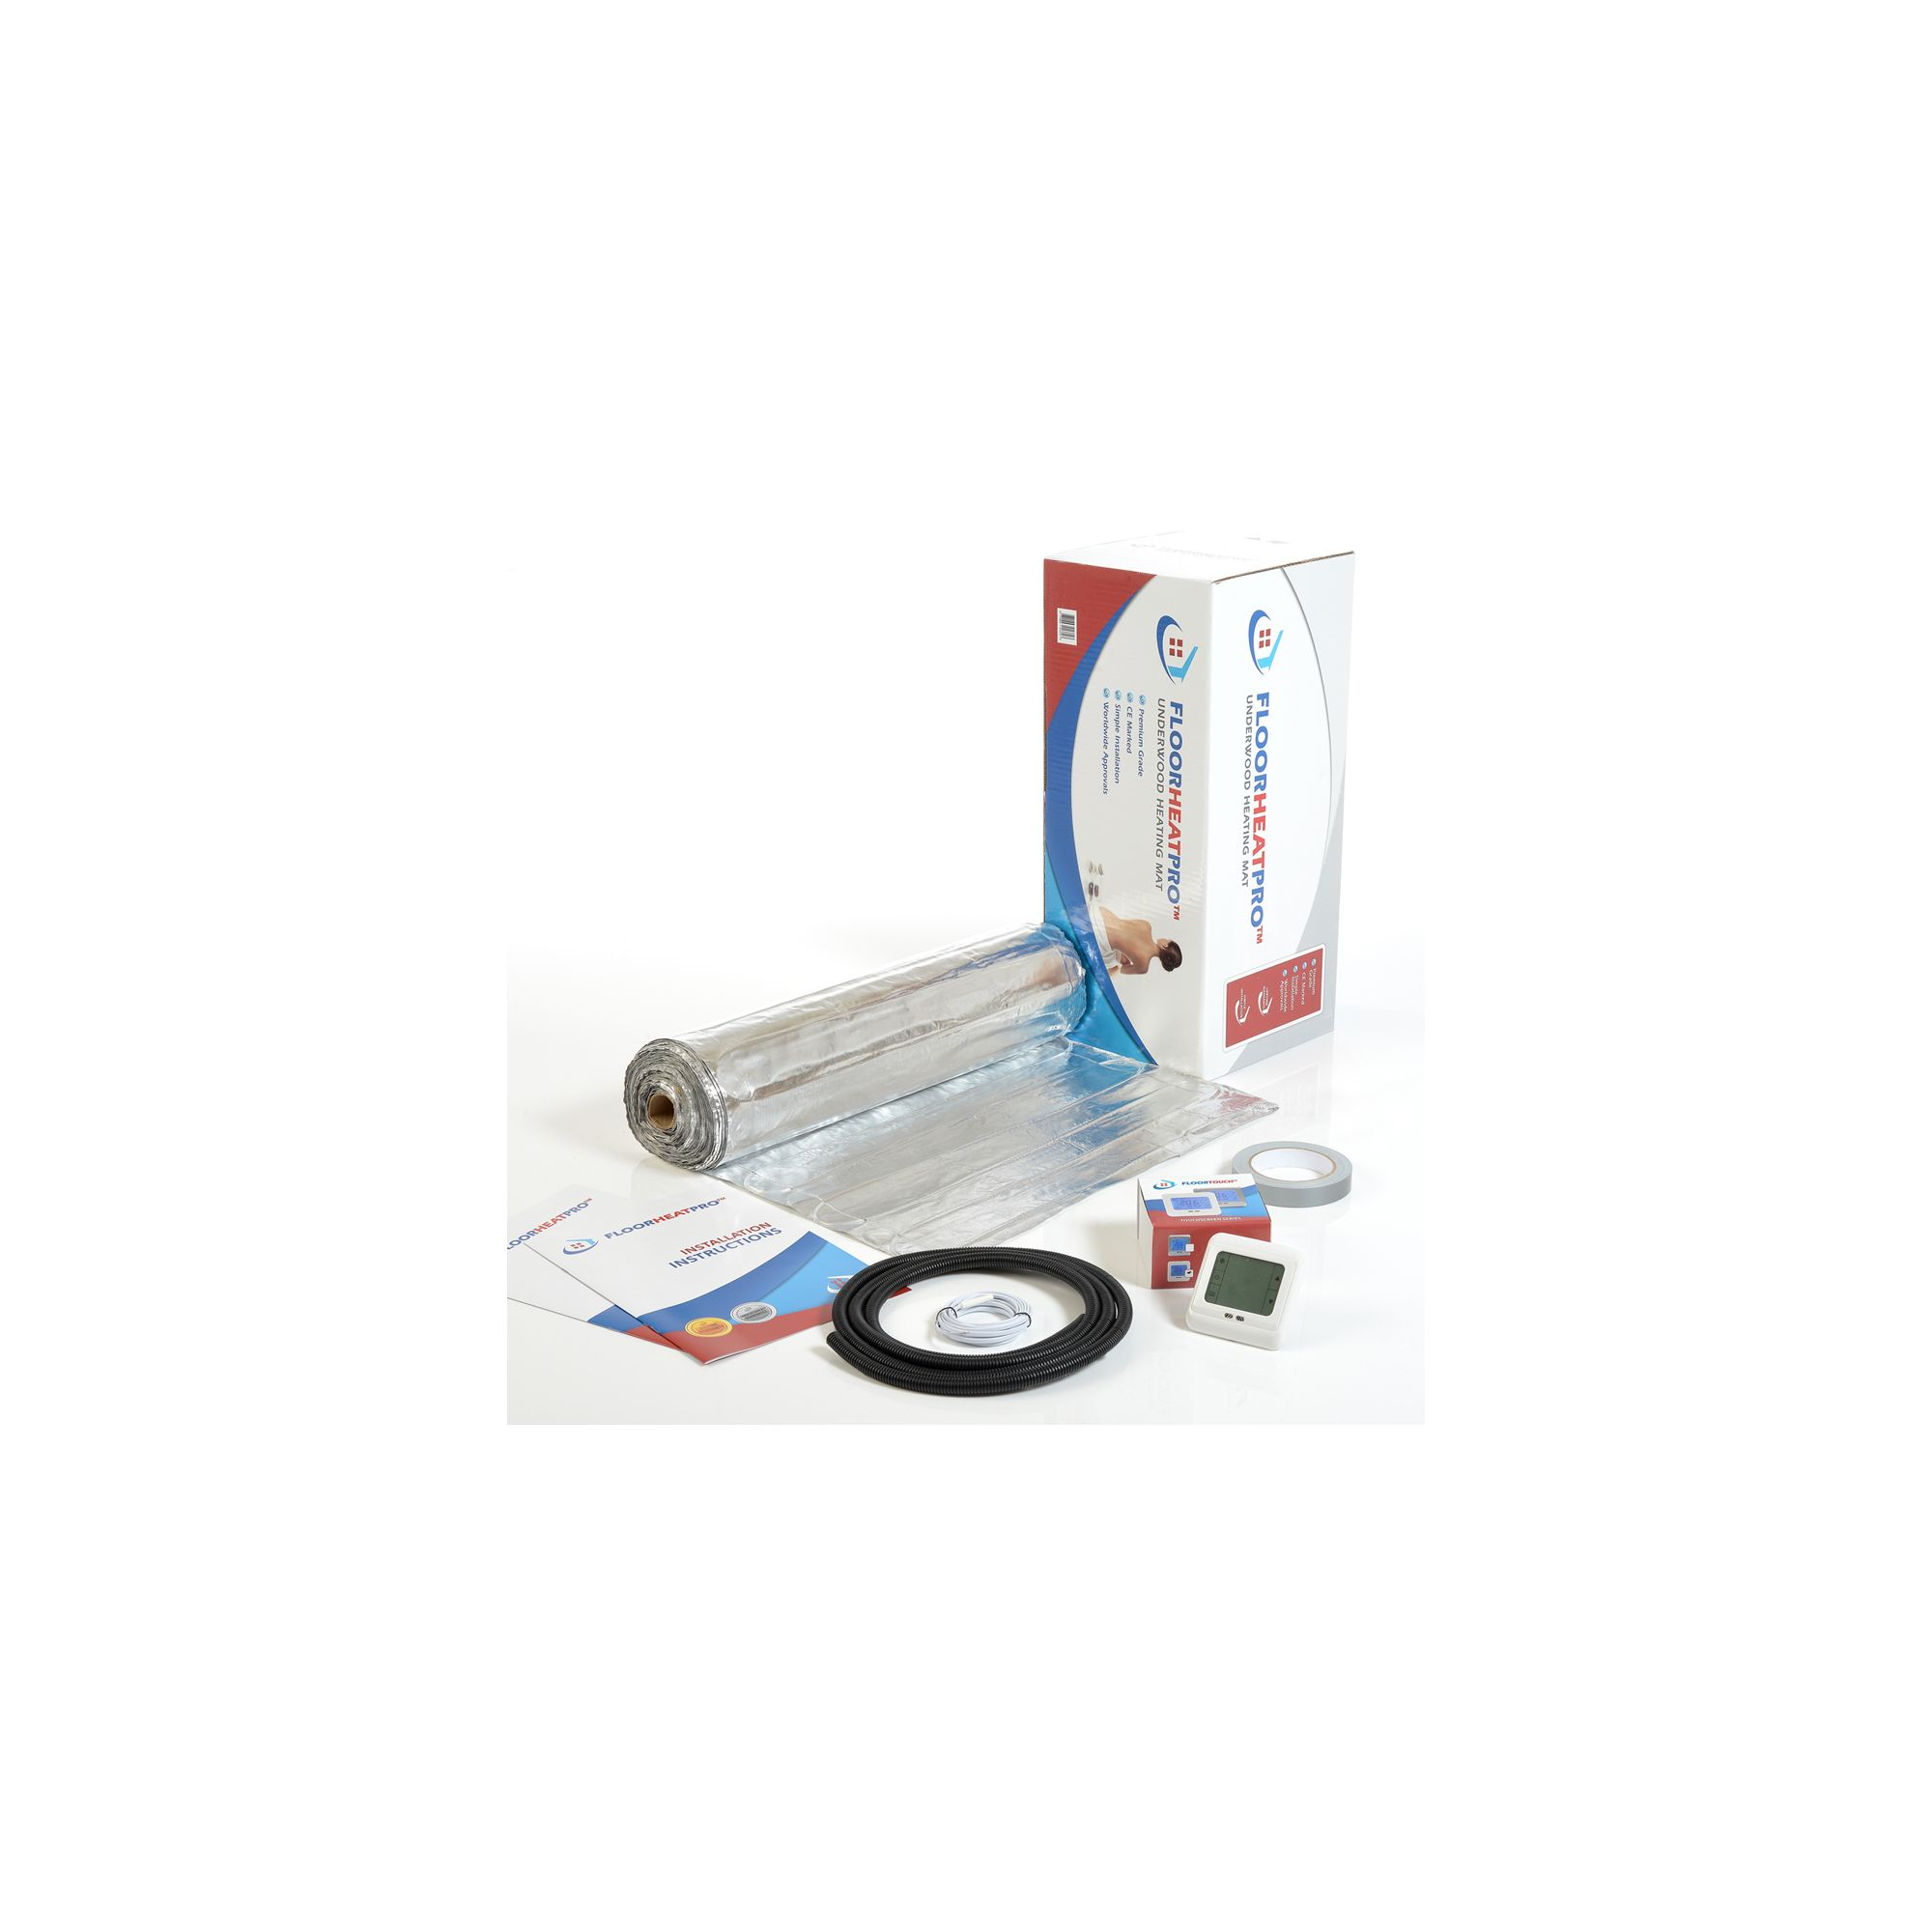 12.0 m2 - Underfloor Electric Heating Kit - Laminate at Tesco Direct